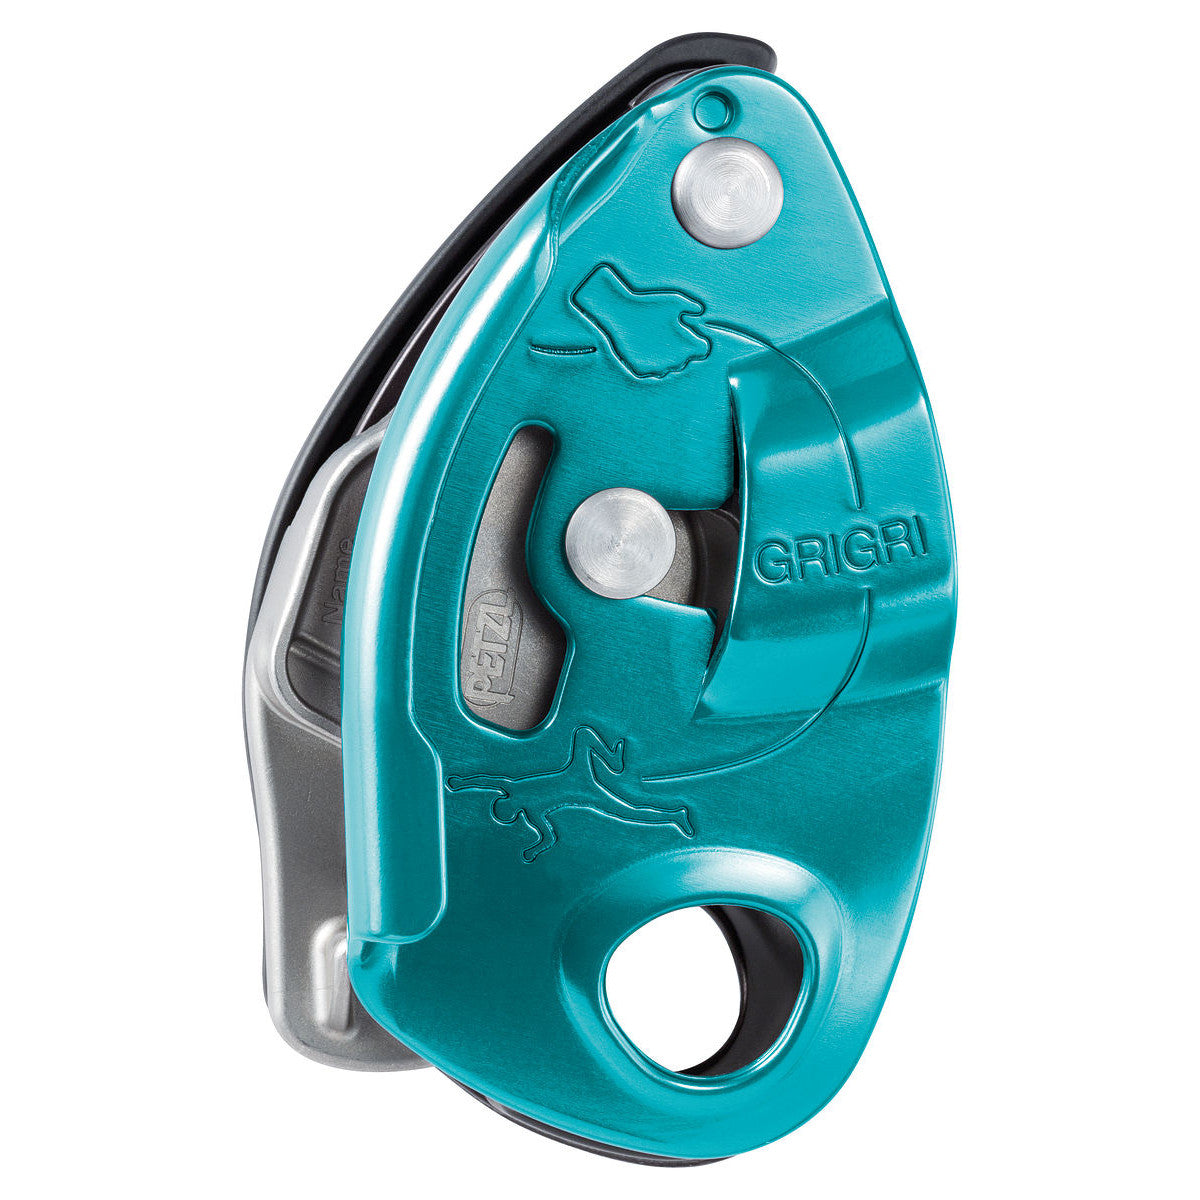 Petzl Grigri belay device, showing side view in Turquoise colour